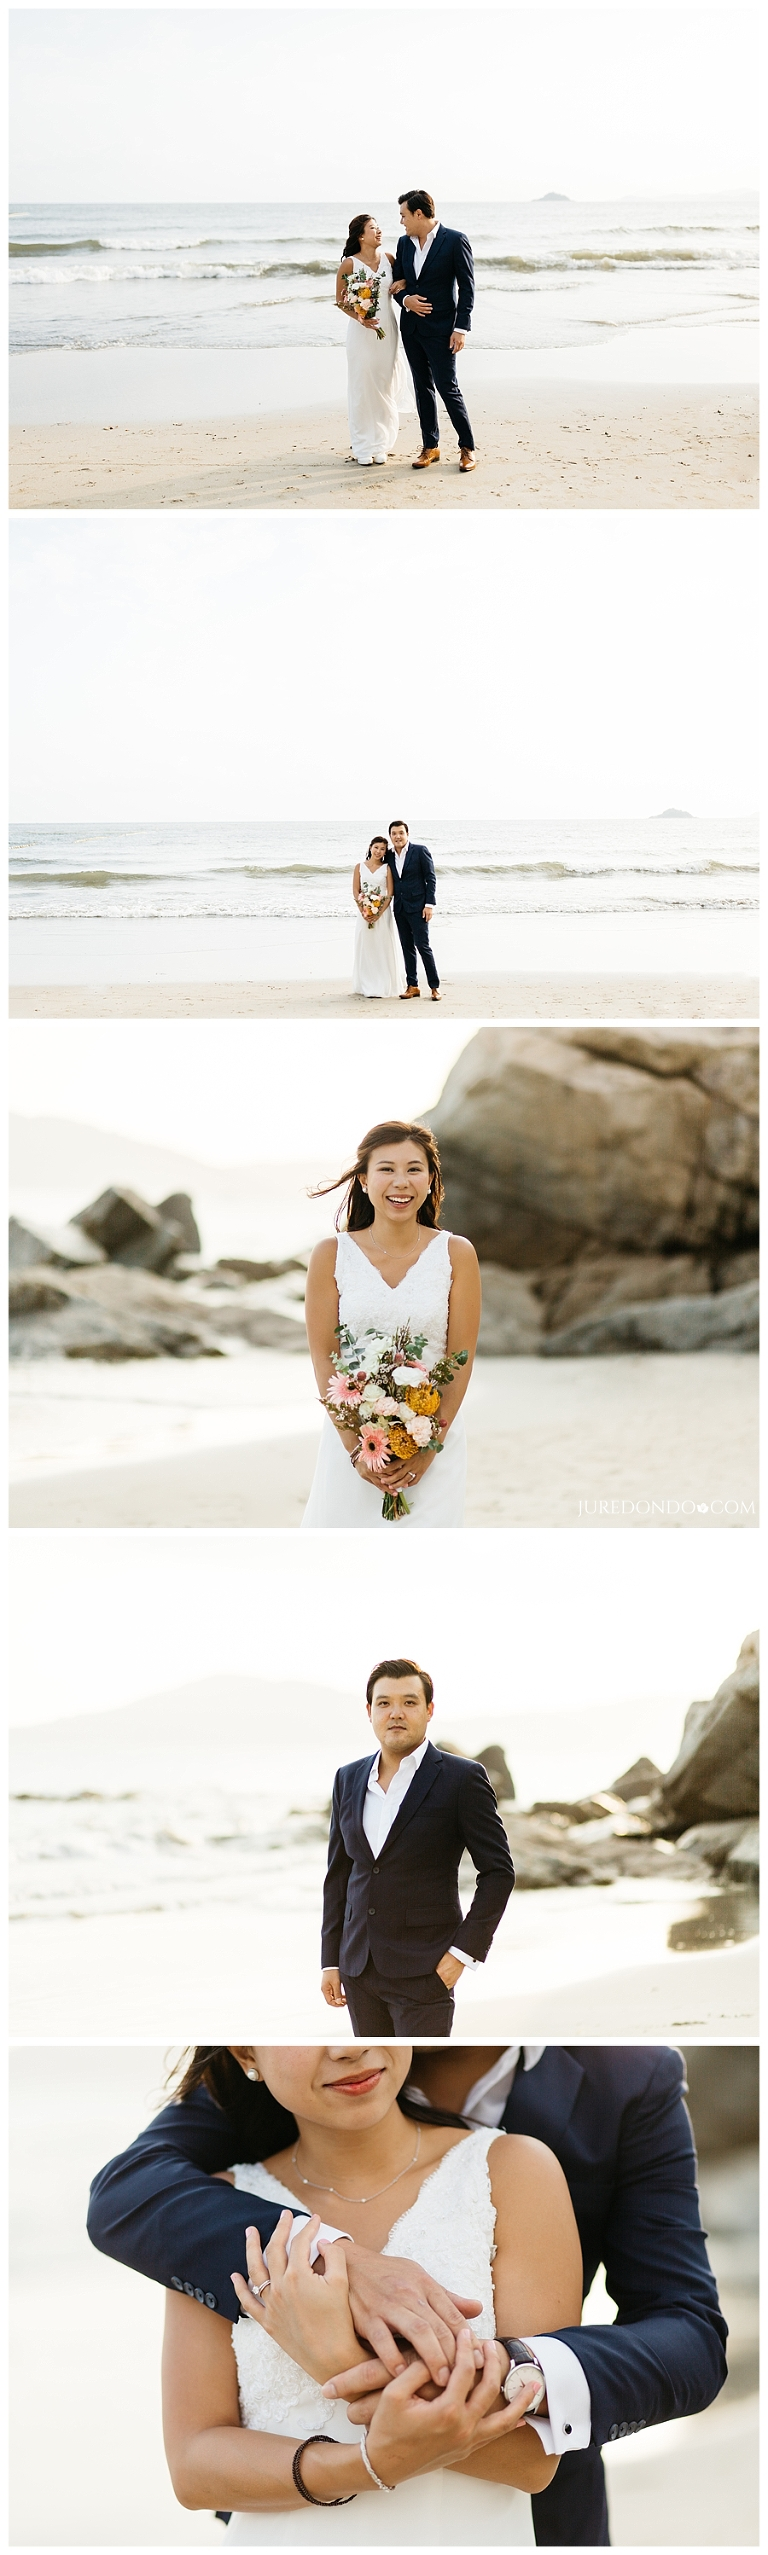 ju redondo photography-hongkong wedding photographer-hkphotographer-hk wedding photography-wedding-pre wedding photographer- engagement-